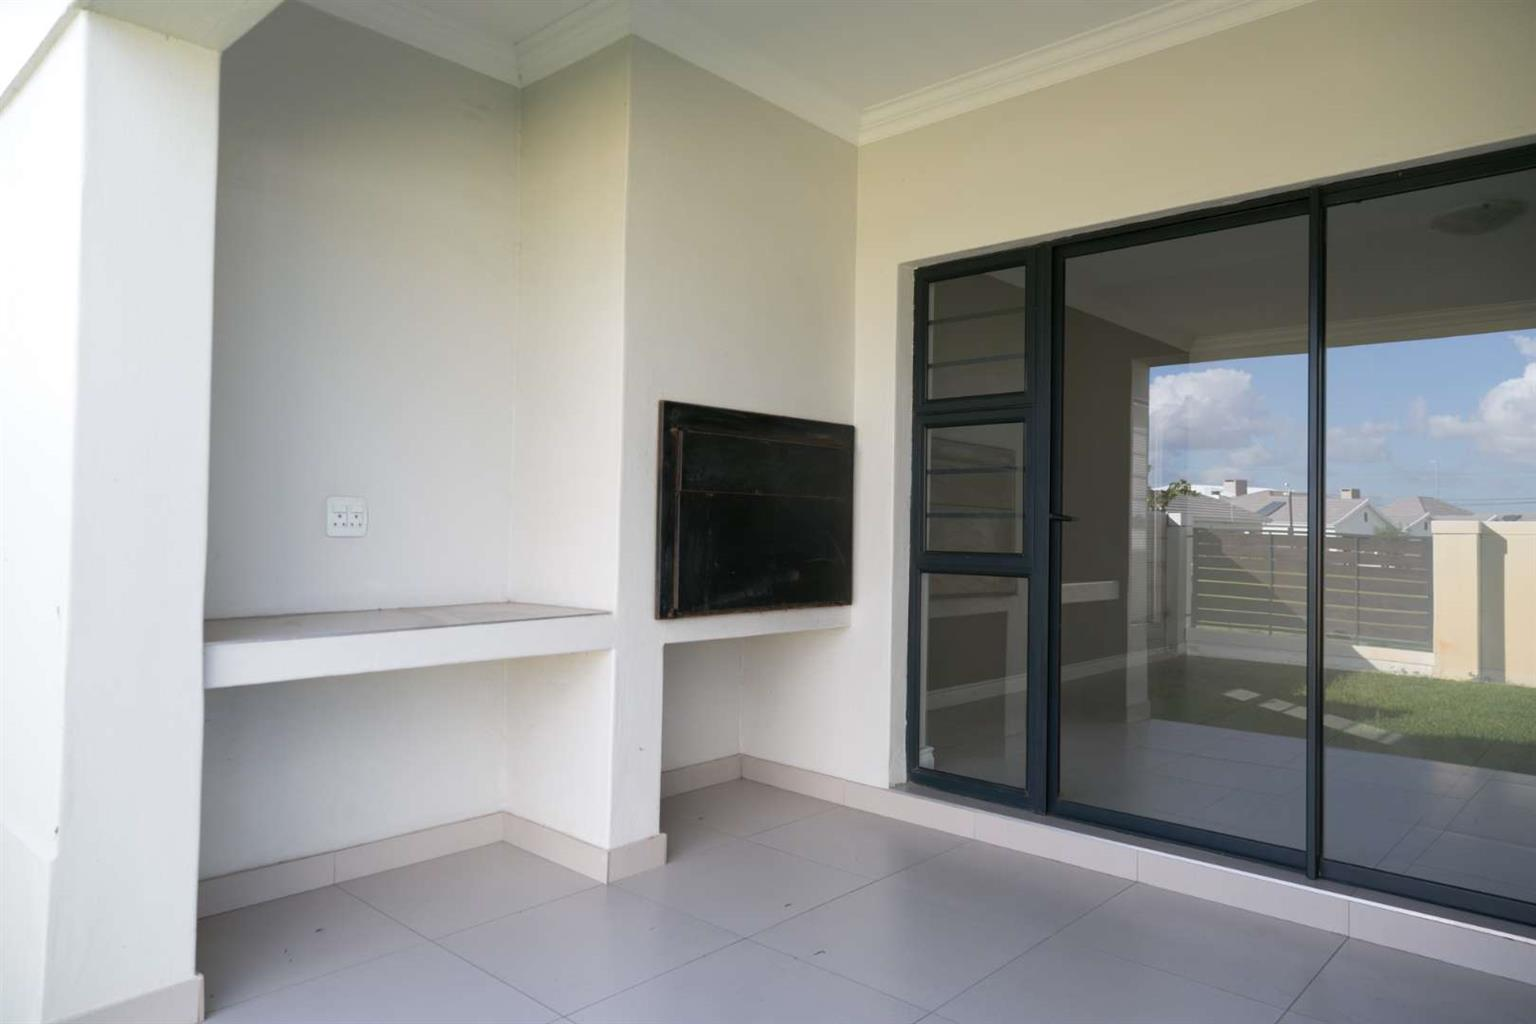 House Rental Monthly in Sonkring